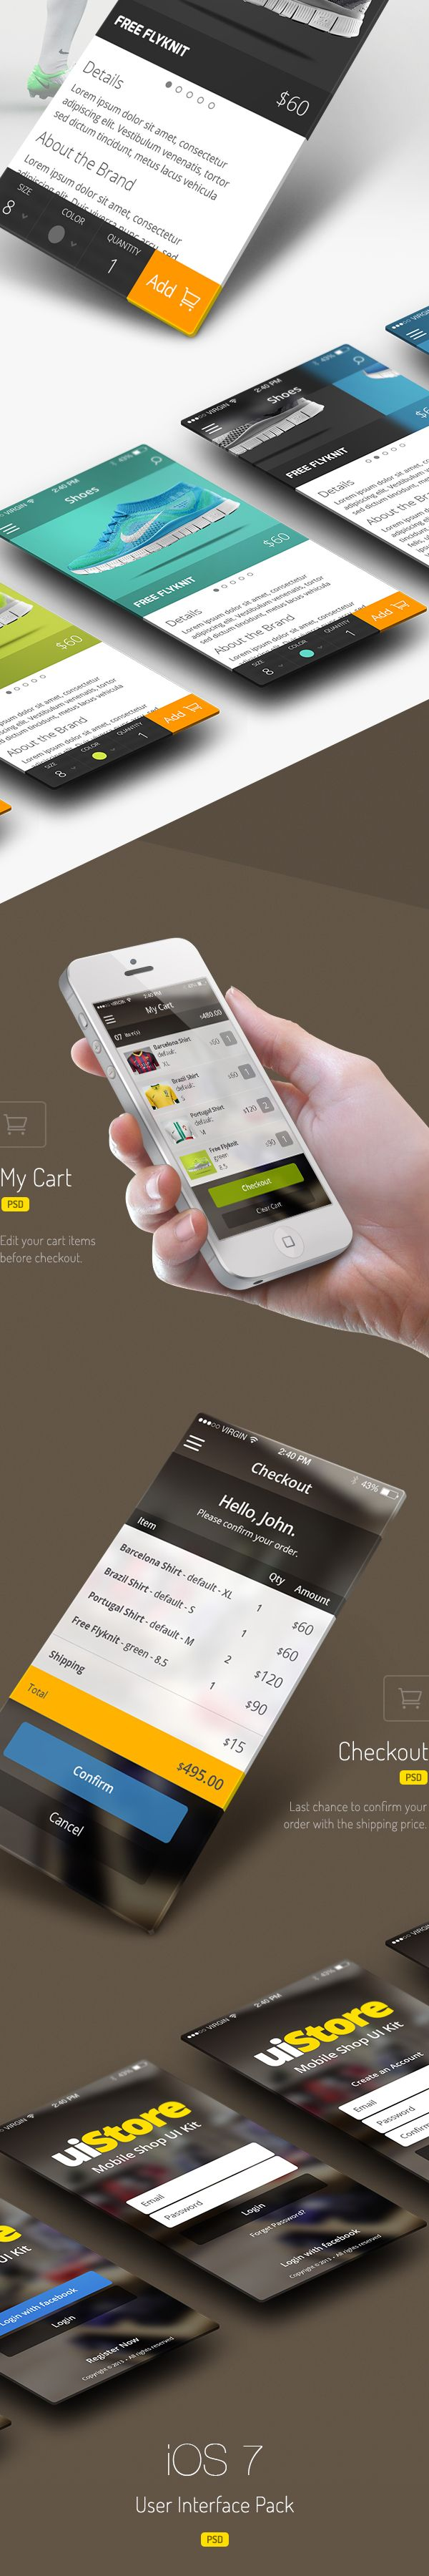 uiStore » iOS7 UI Kit by Rodrigo Santino, via Behance